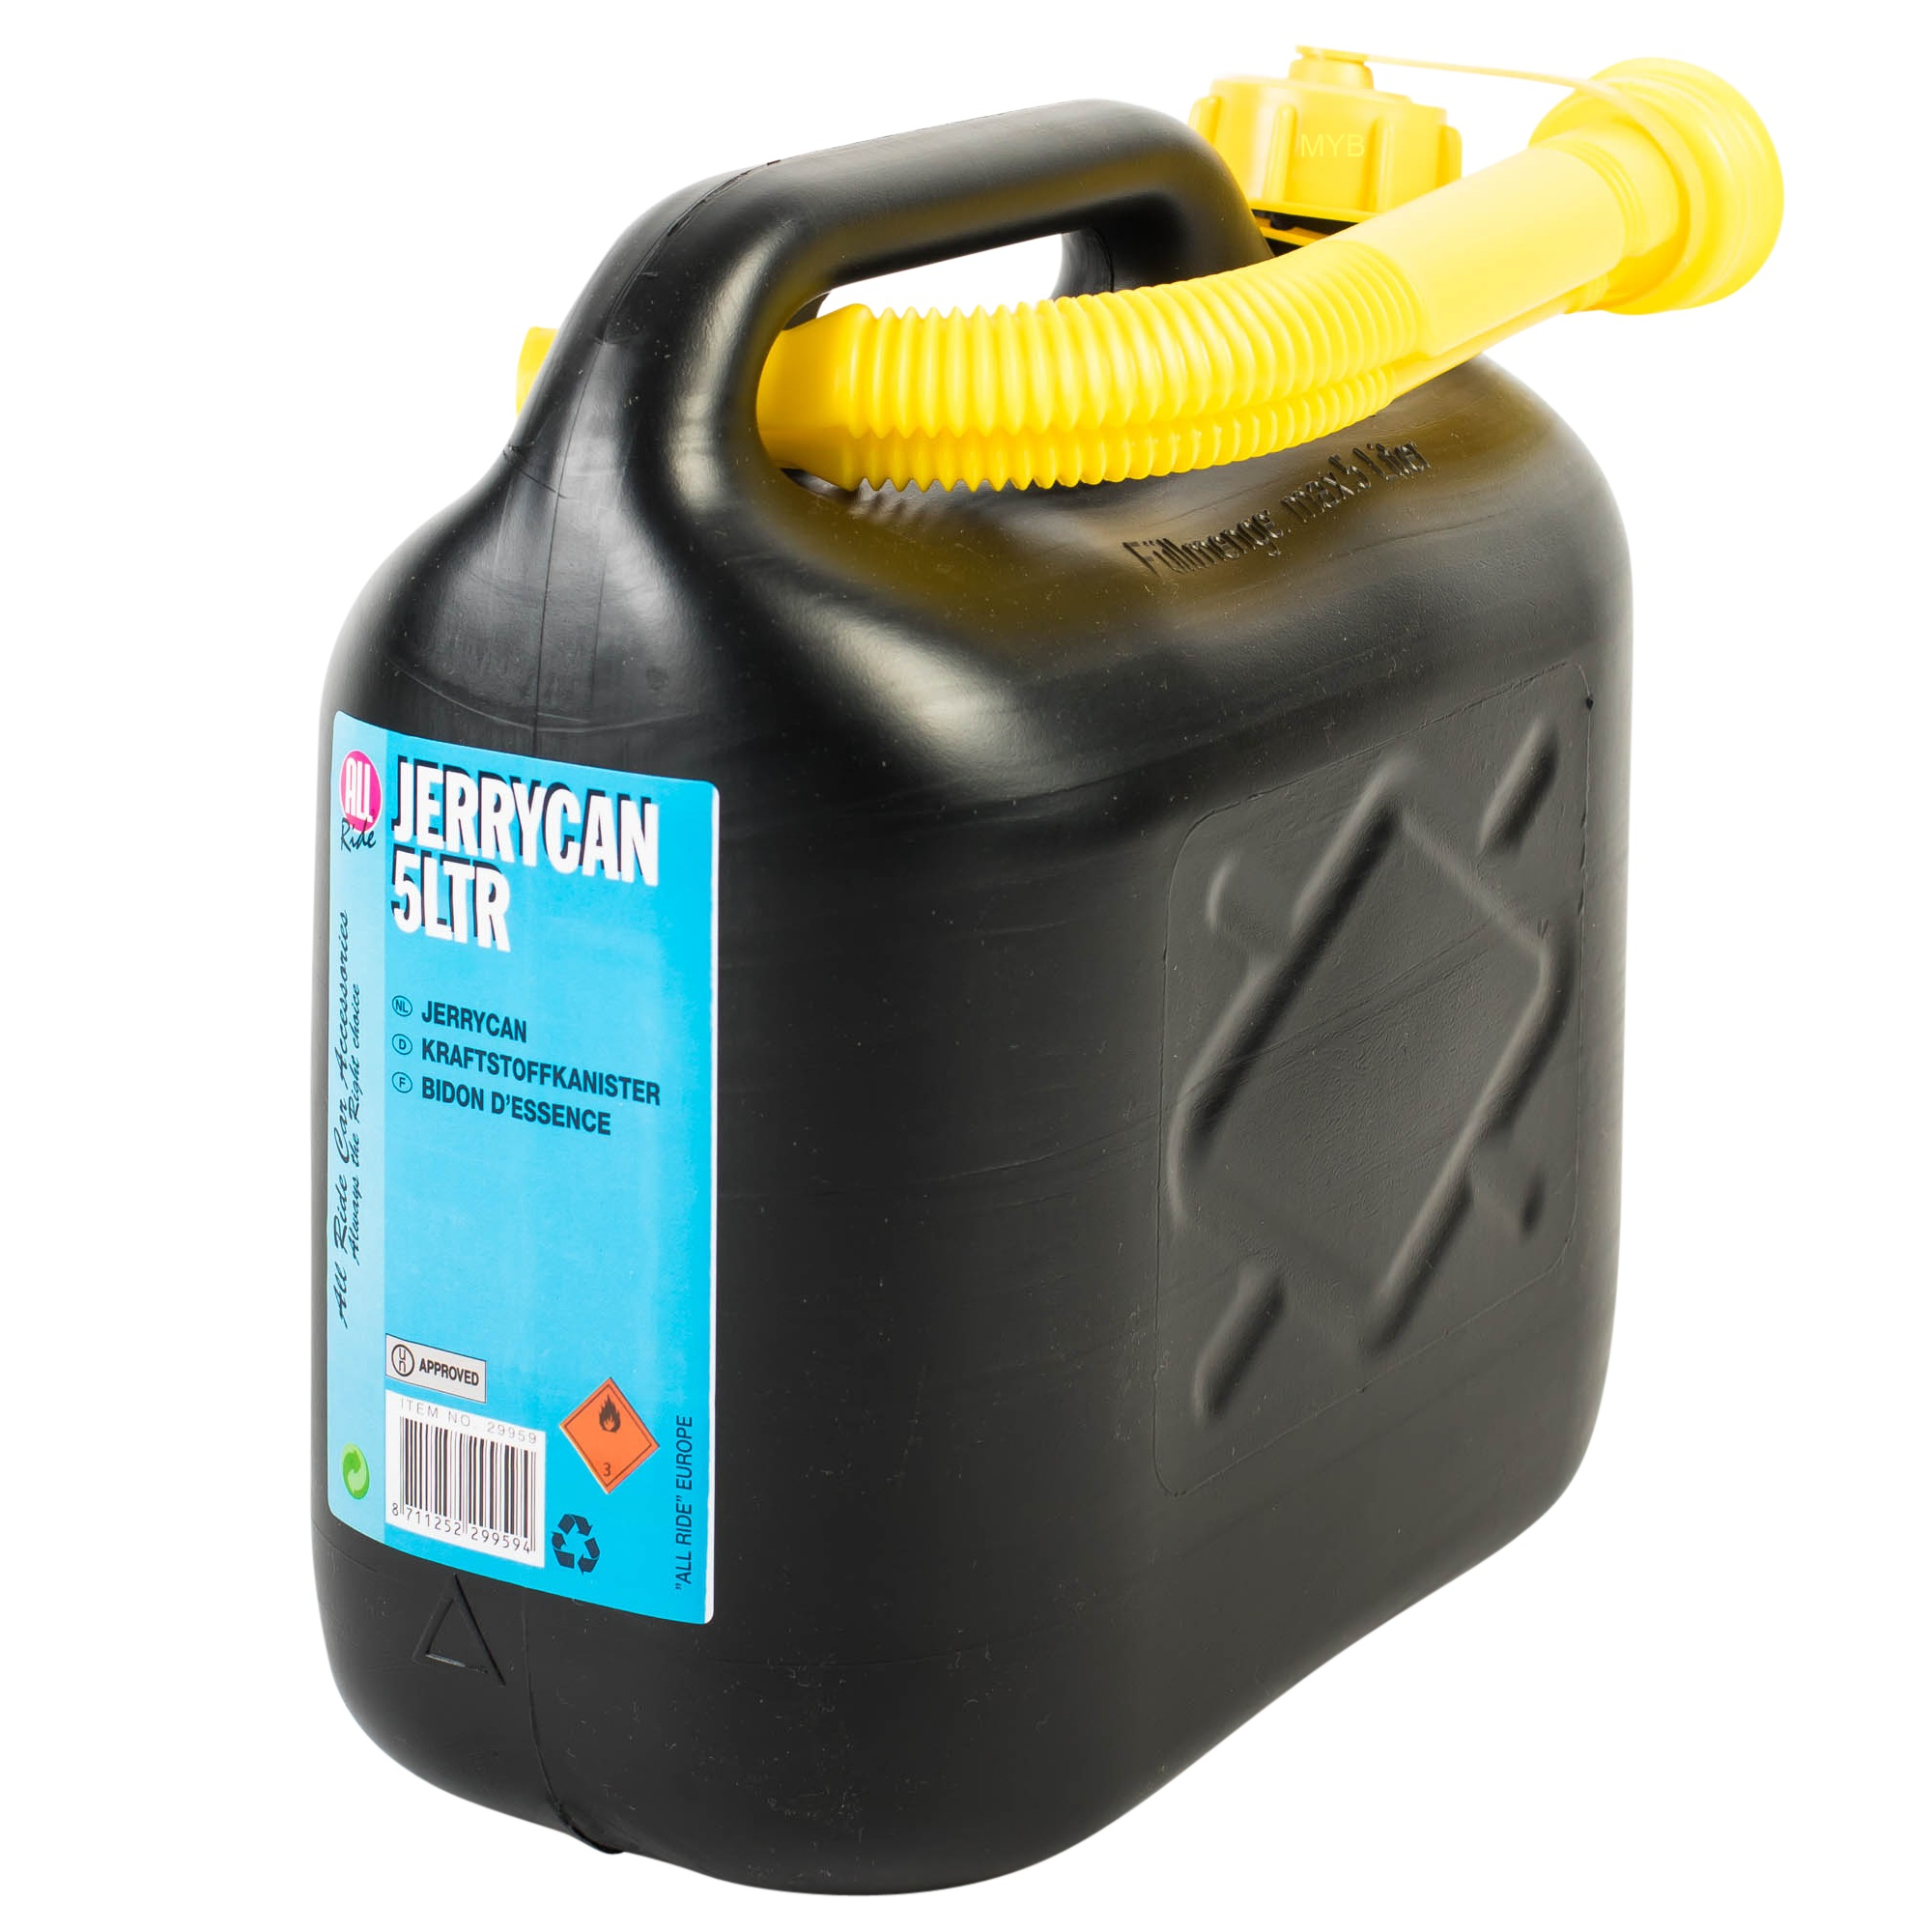 Jerrycan Action Black Plastic Jerry Fuel Can Petrol Diesel Water Container